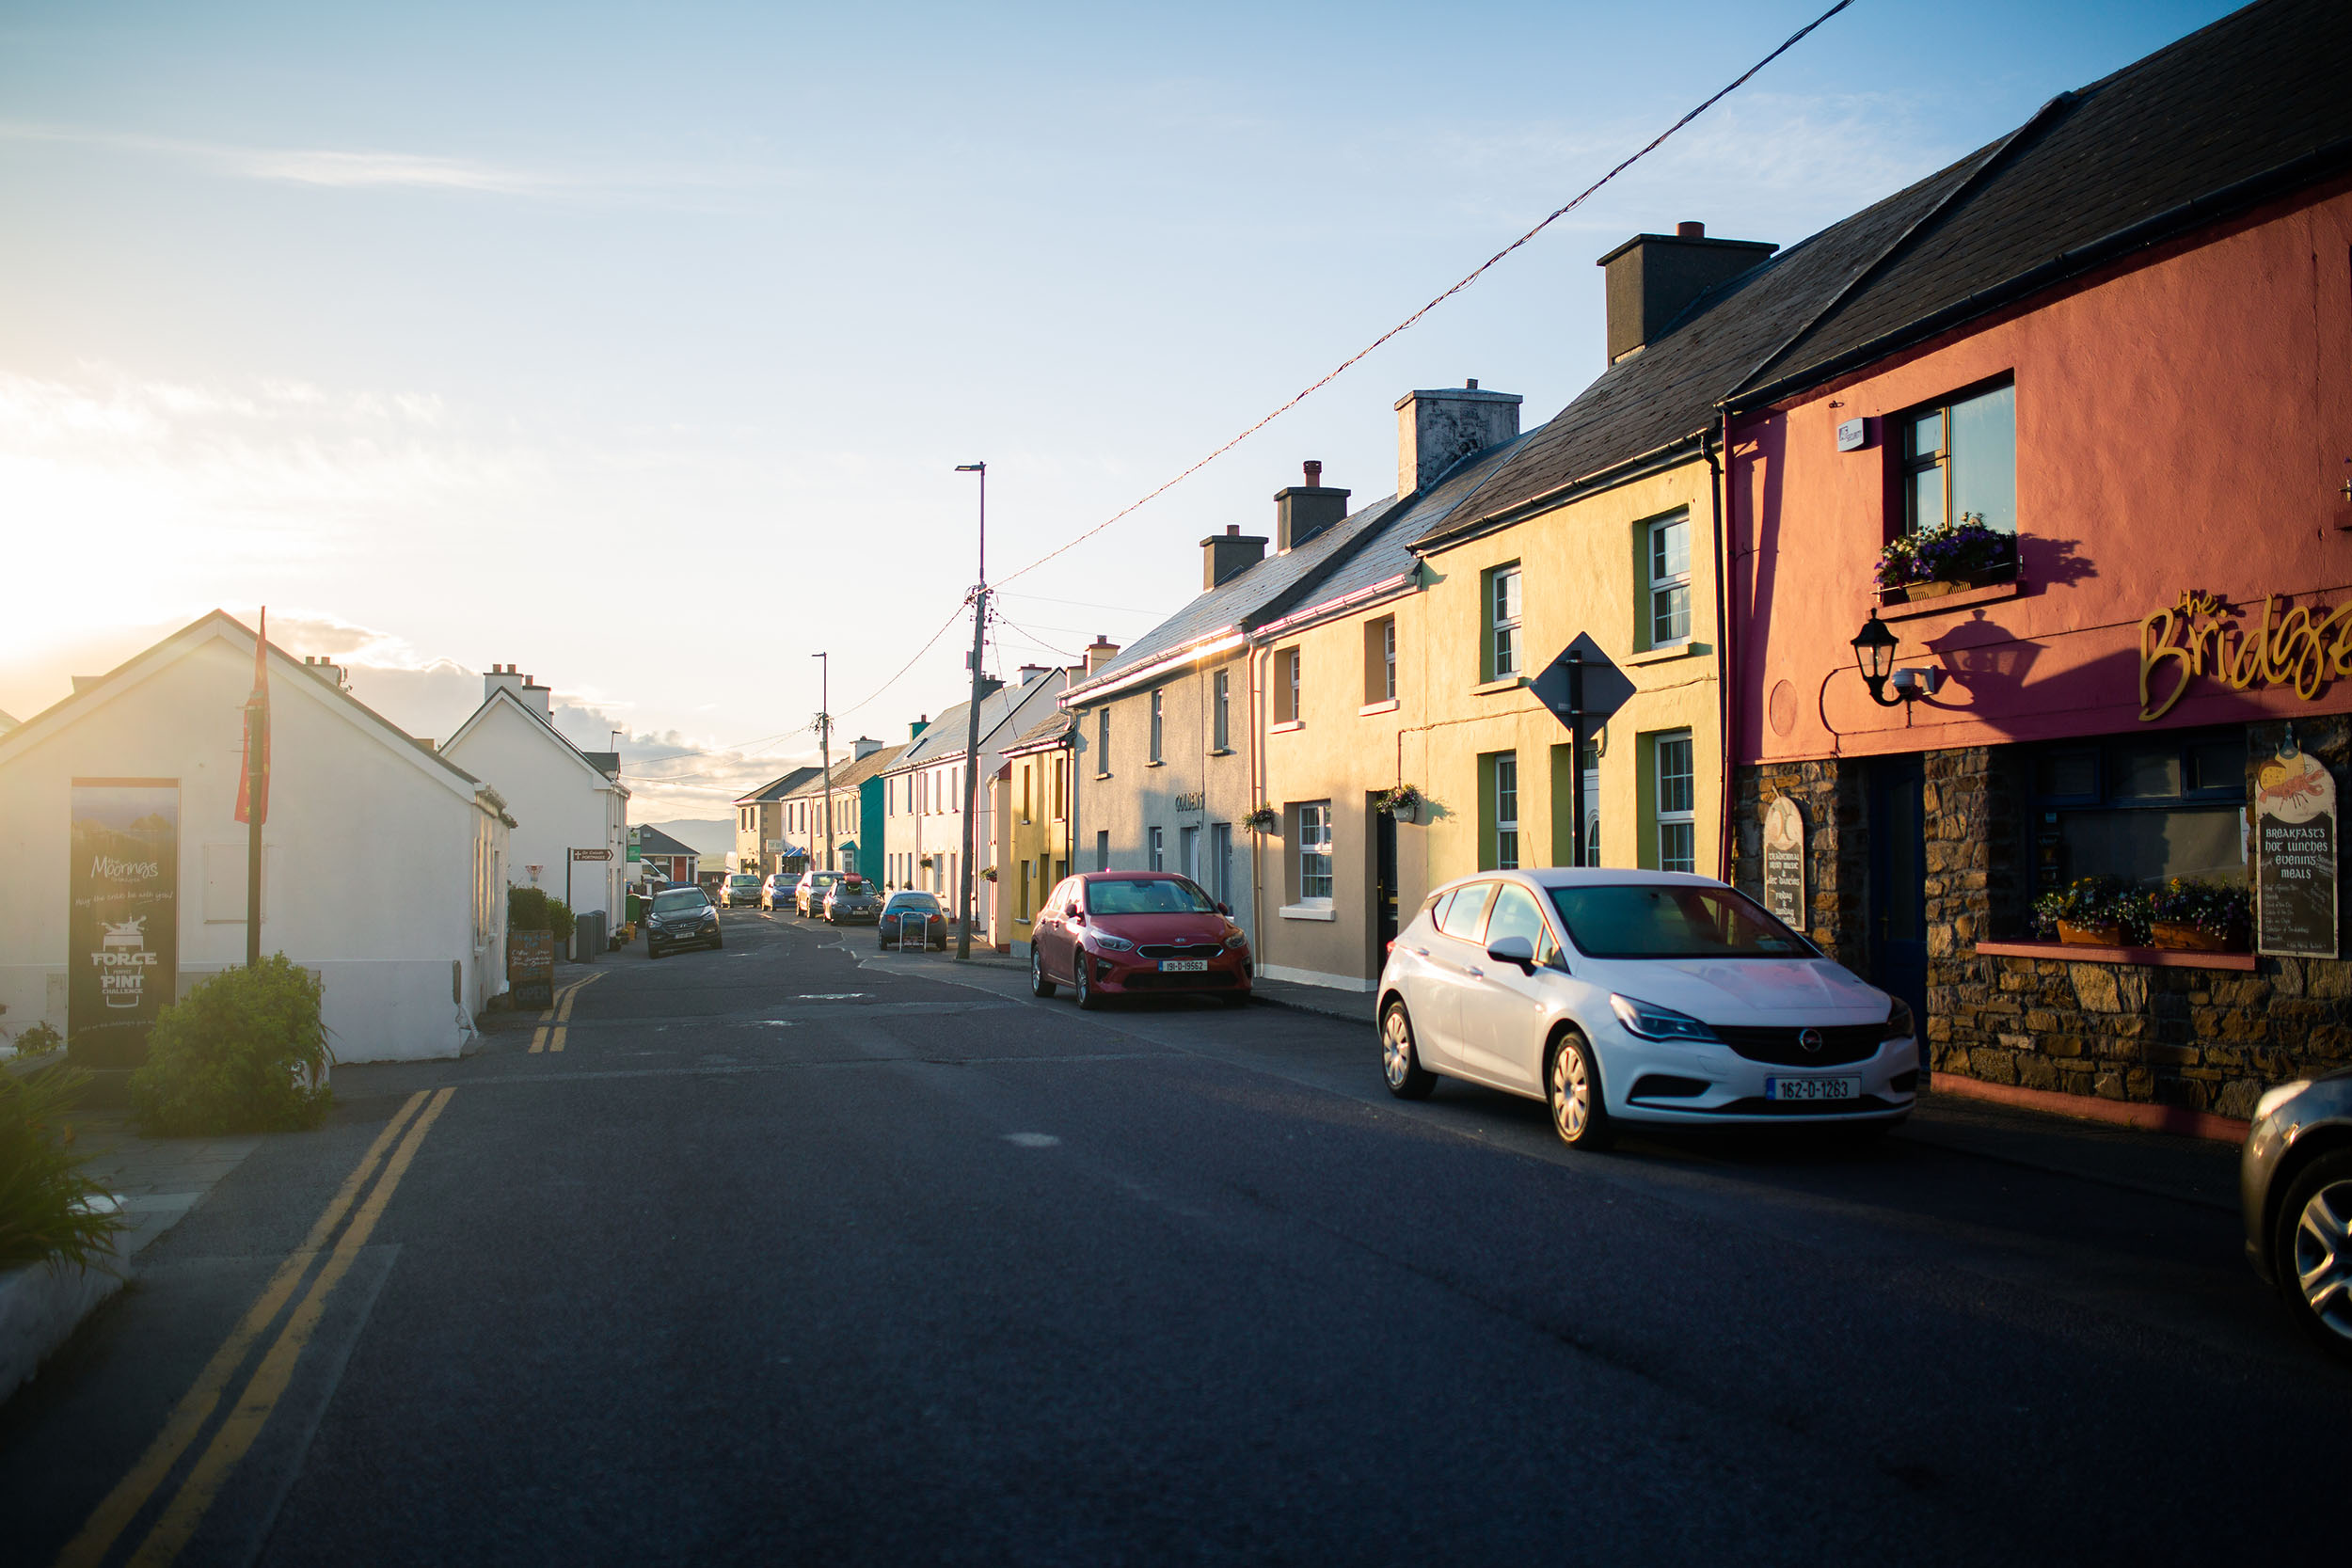 IRELAND_KERRY_PORTMAGEE_0002